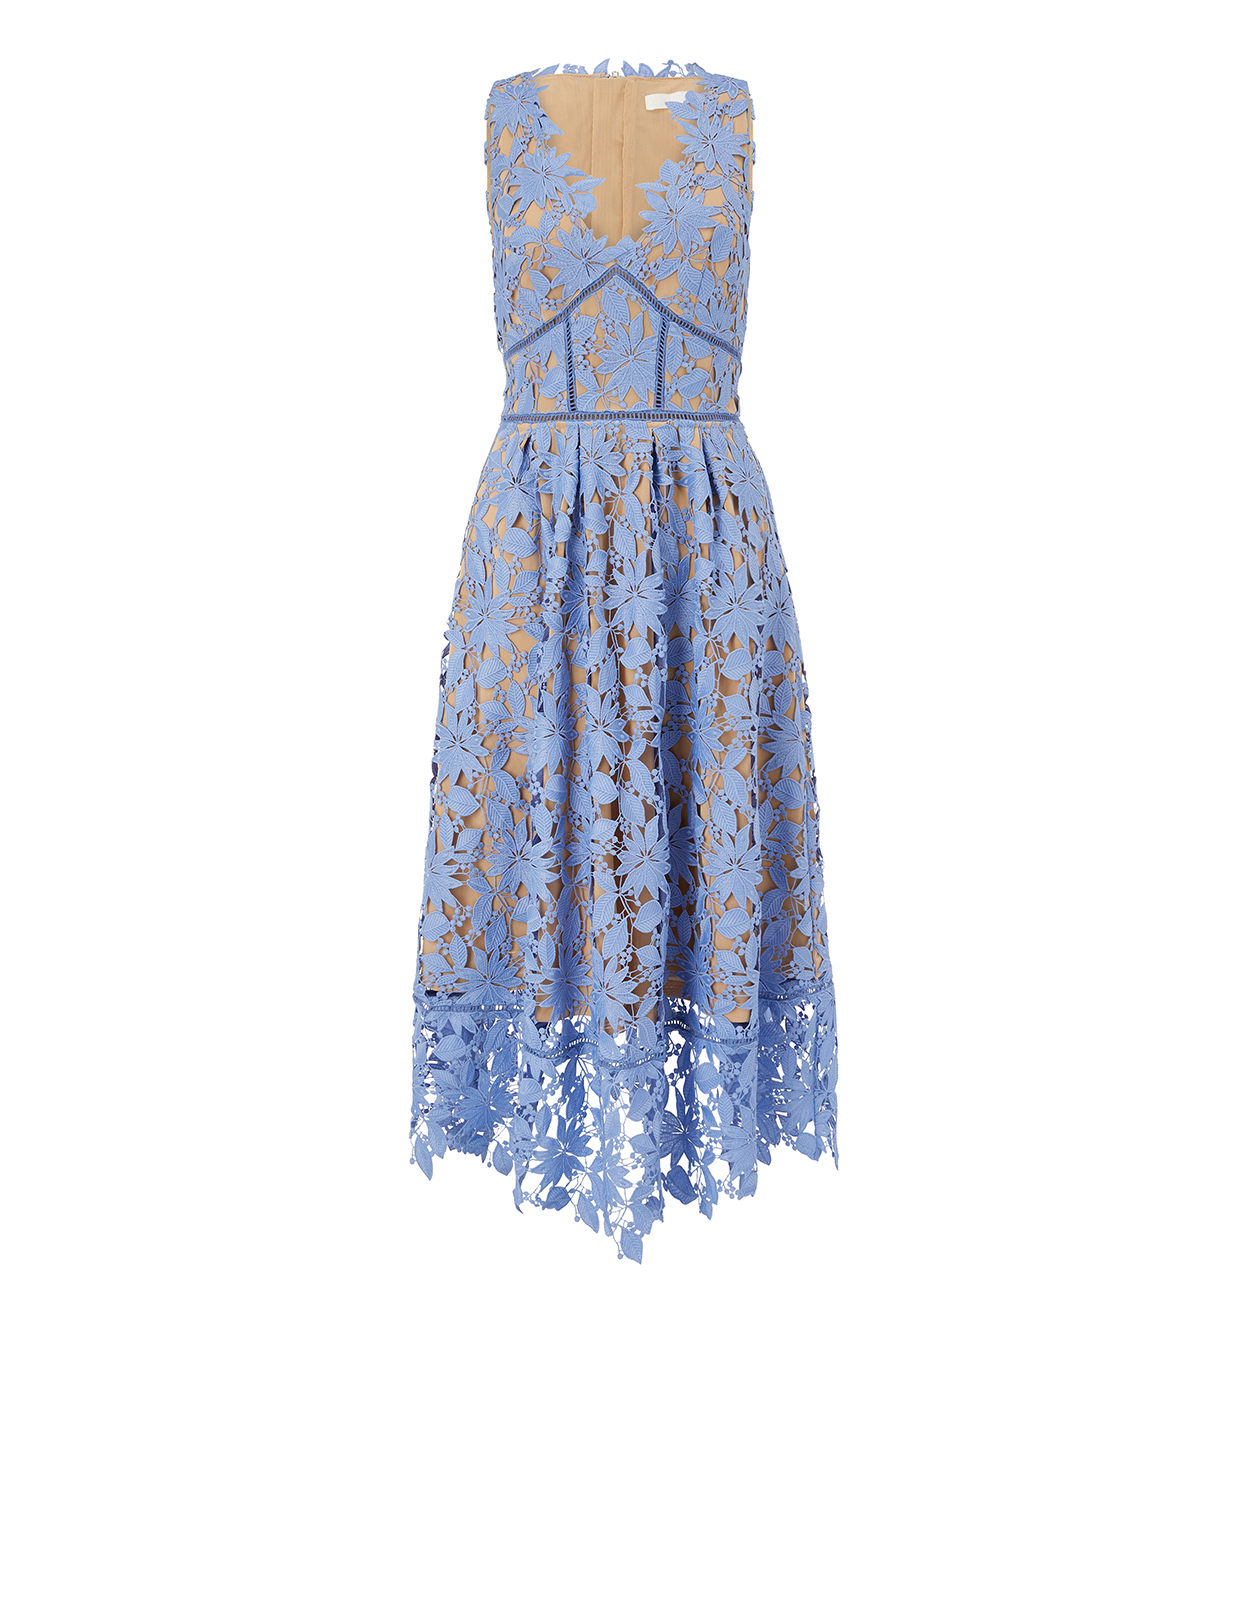 Marianne Lace Dress, £169 From Monsoon